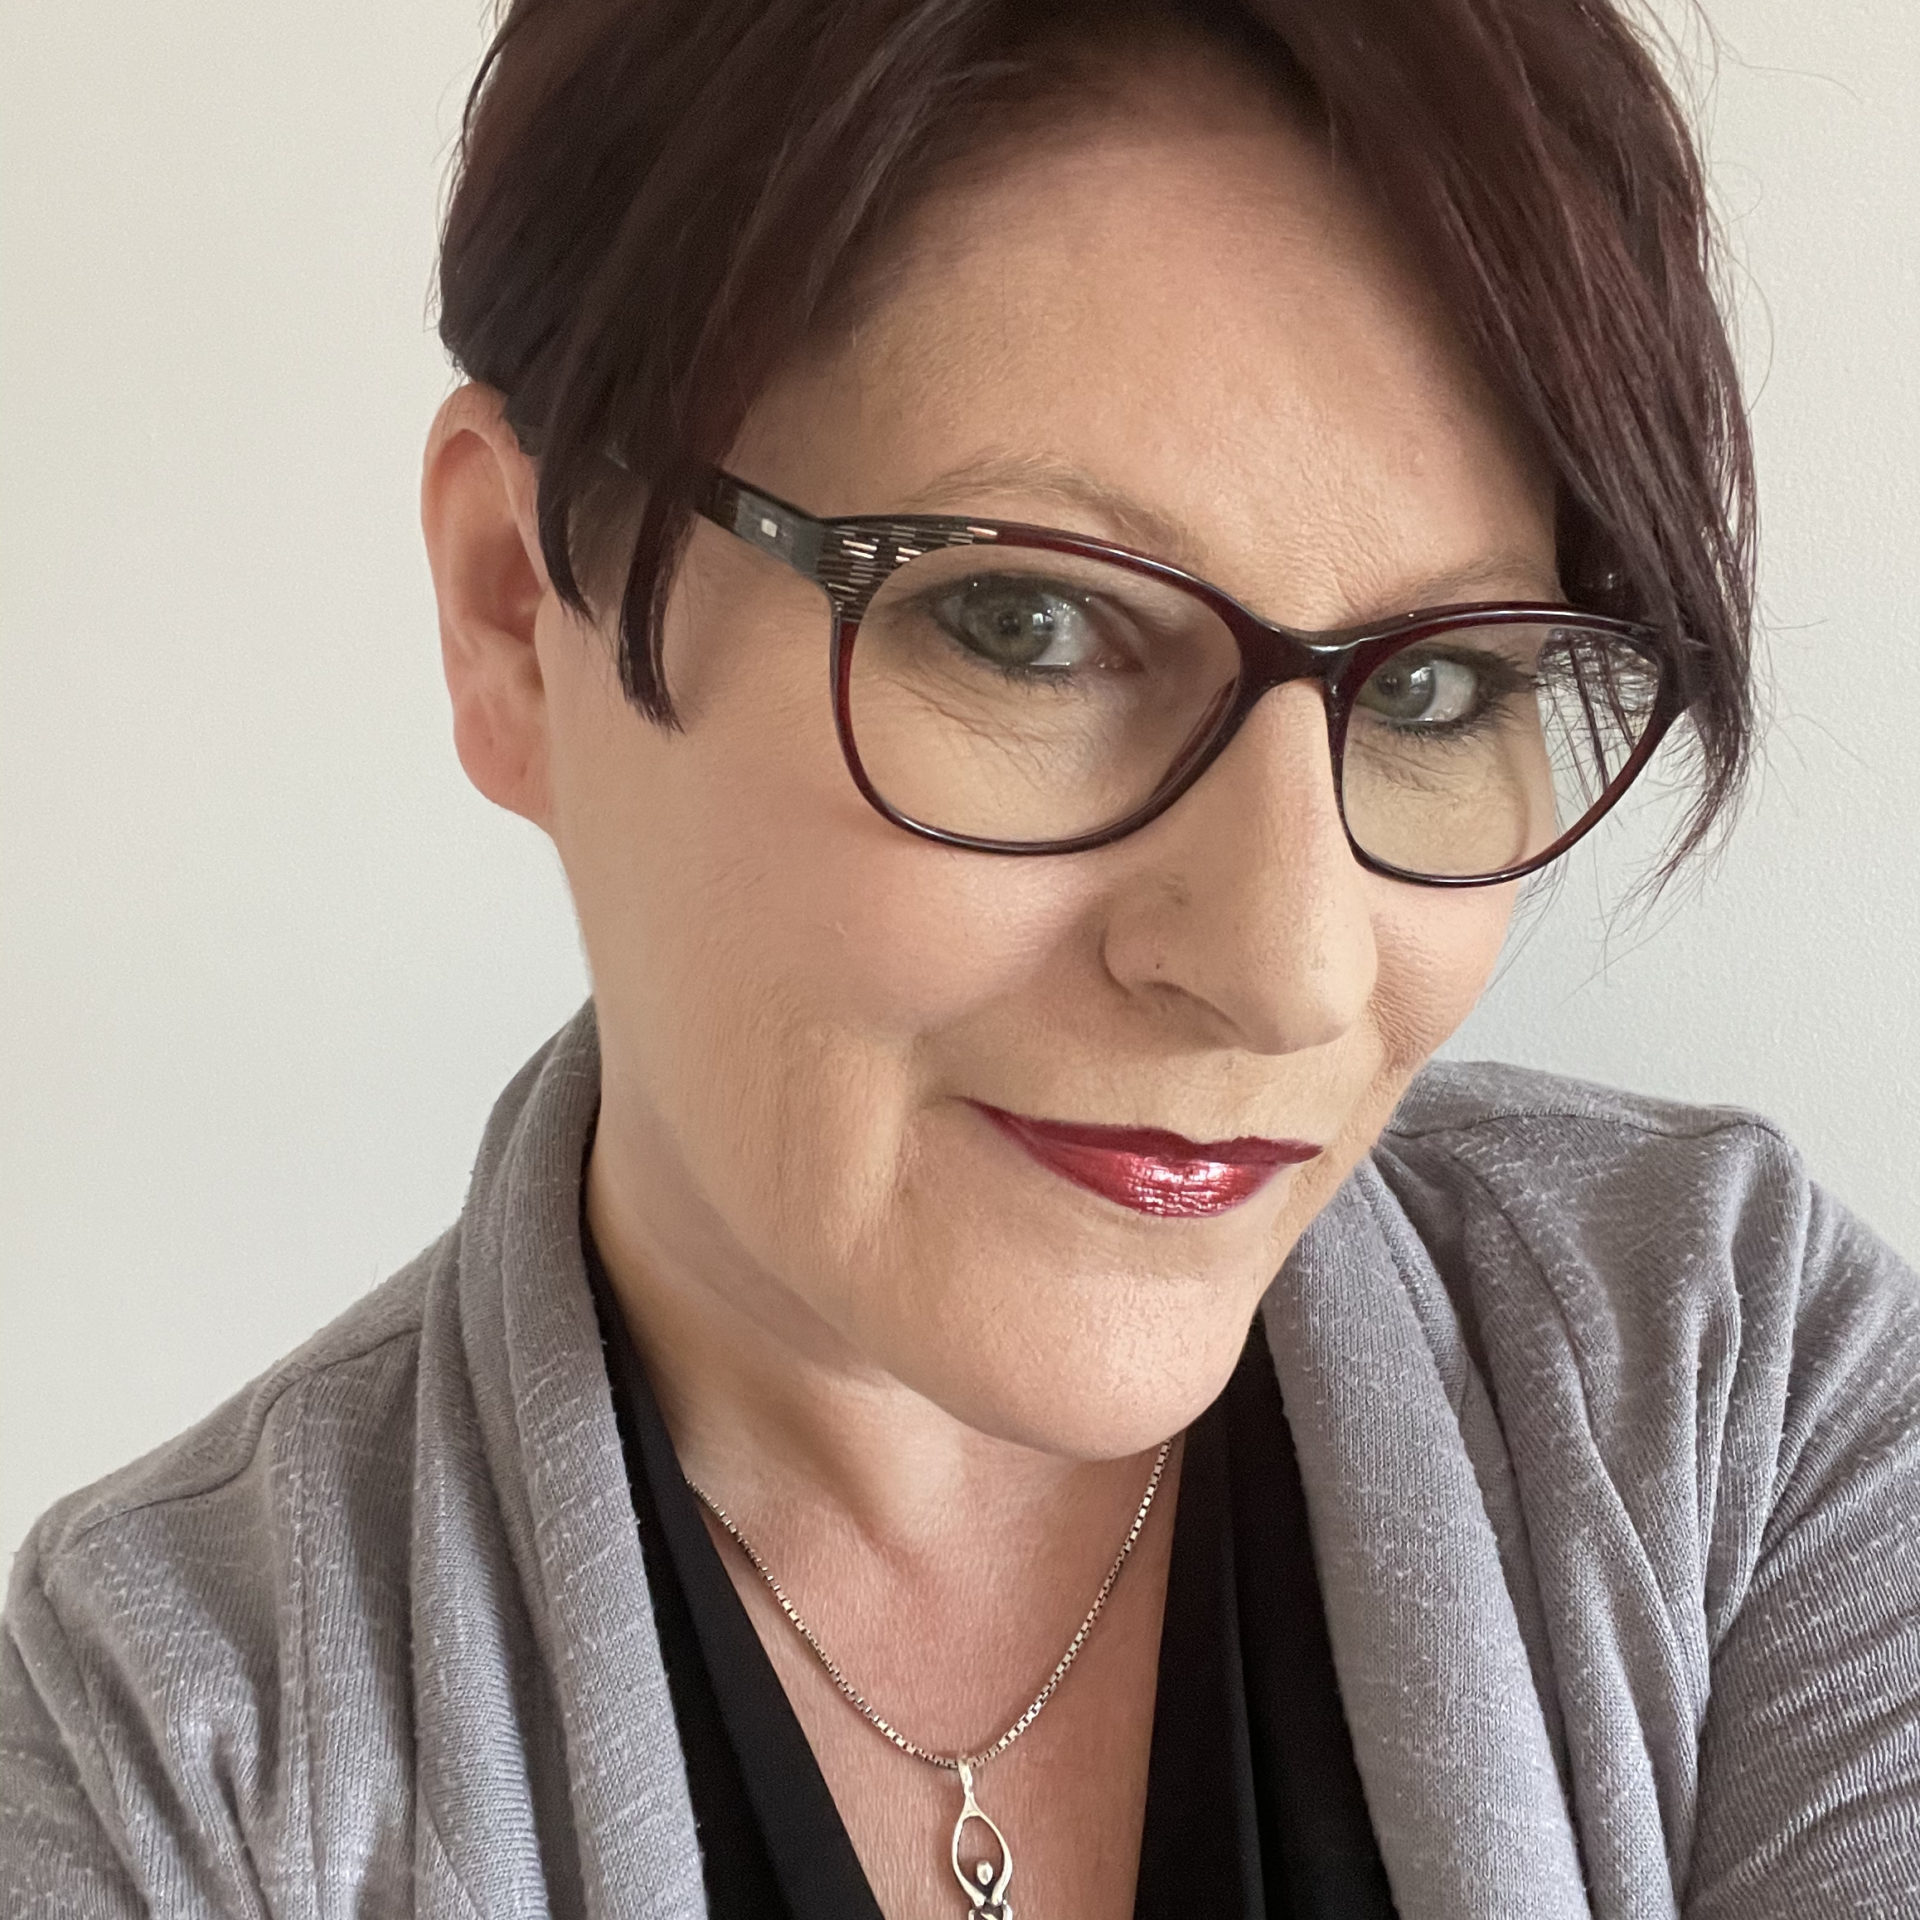 Gina Snooks wearing glasses and a grey cardigan with a black shirt, smiling